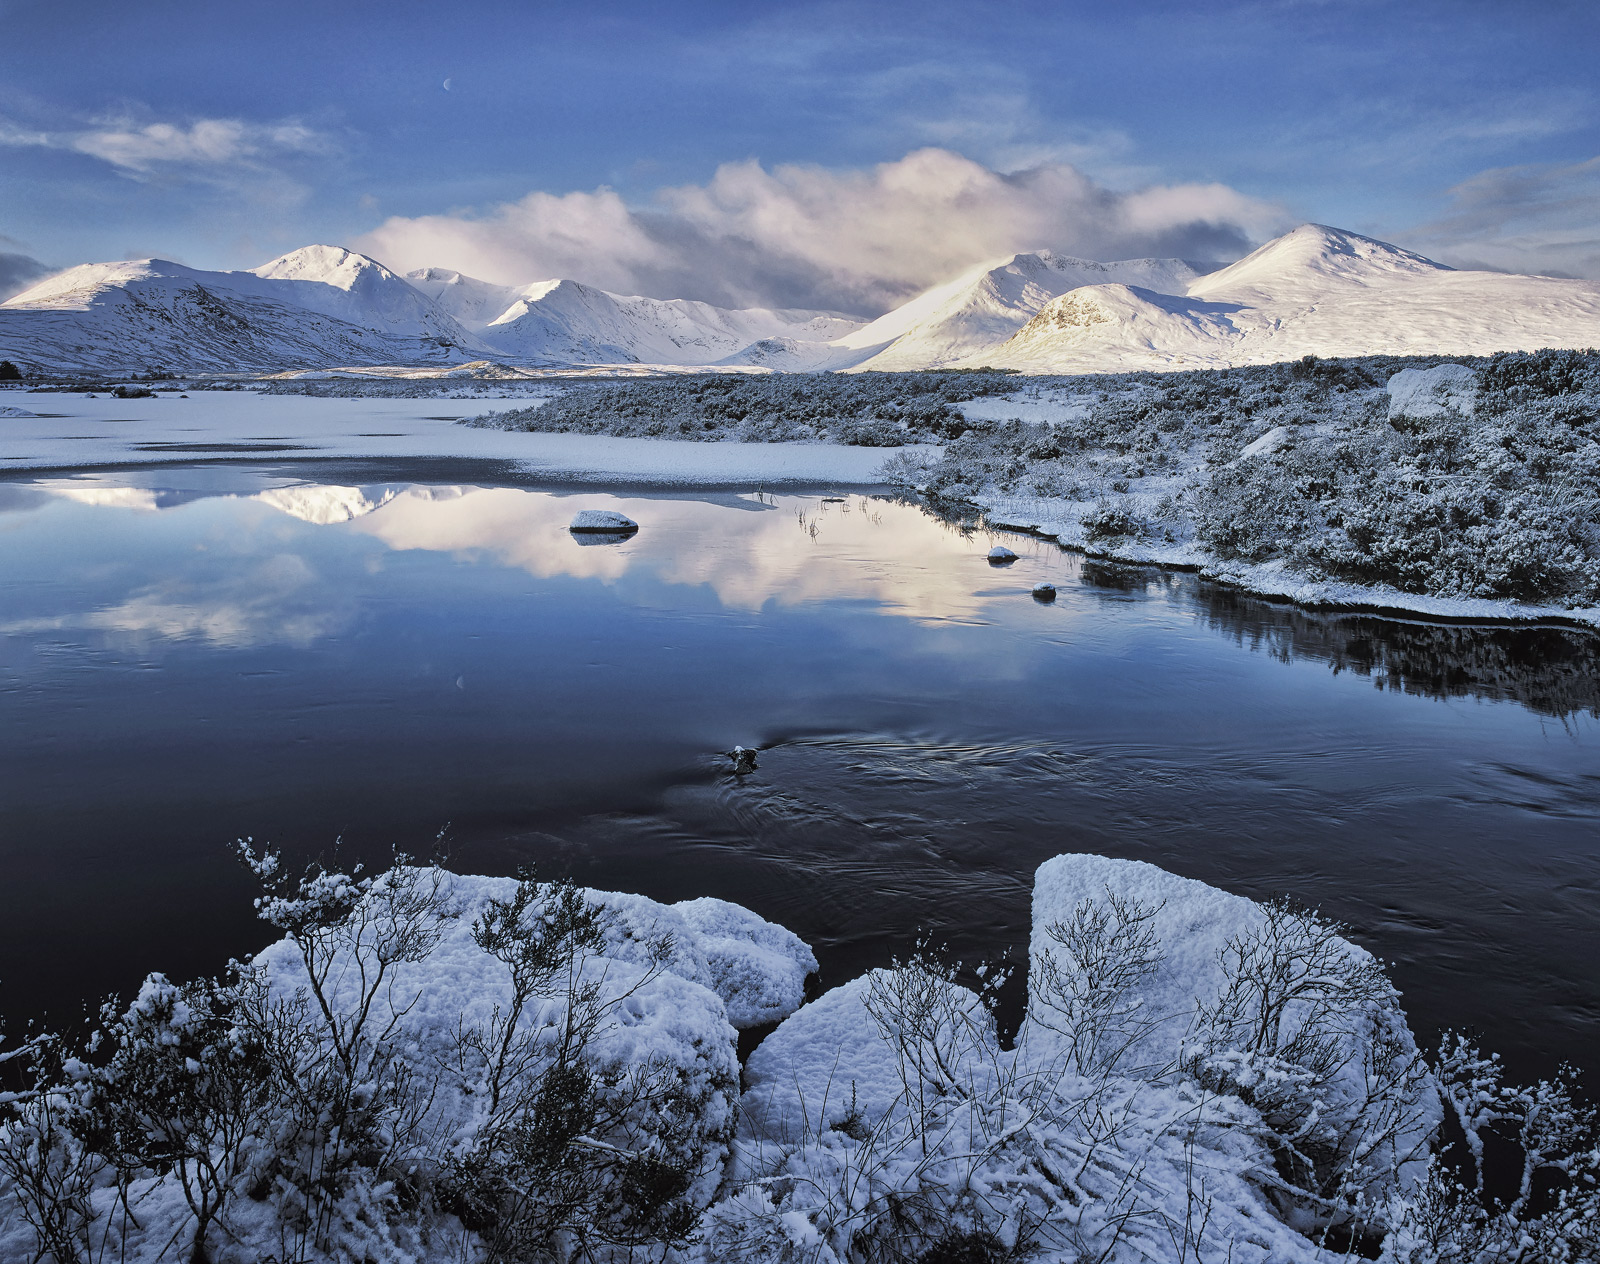 On a chilly December morning I found myself exploring familiar territory at the edge of Lochan N' Achlaise gazing towards the...